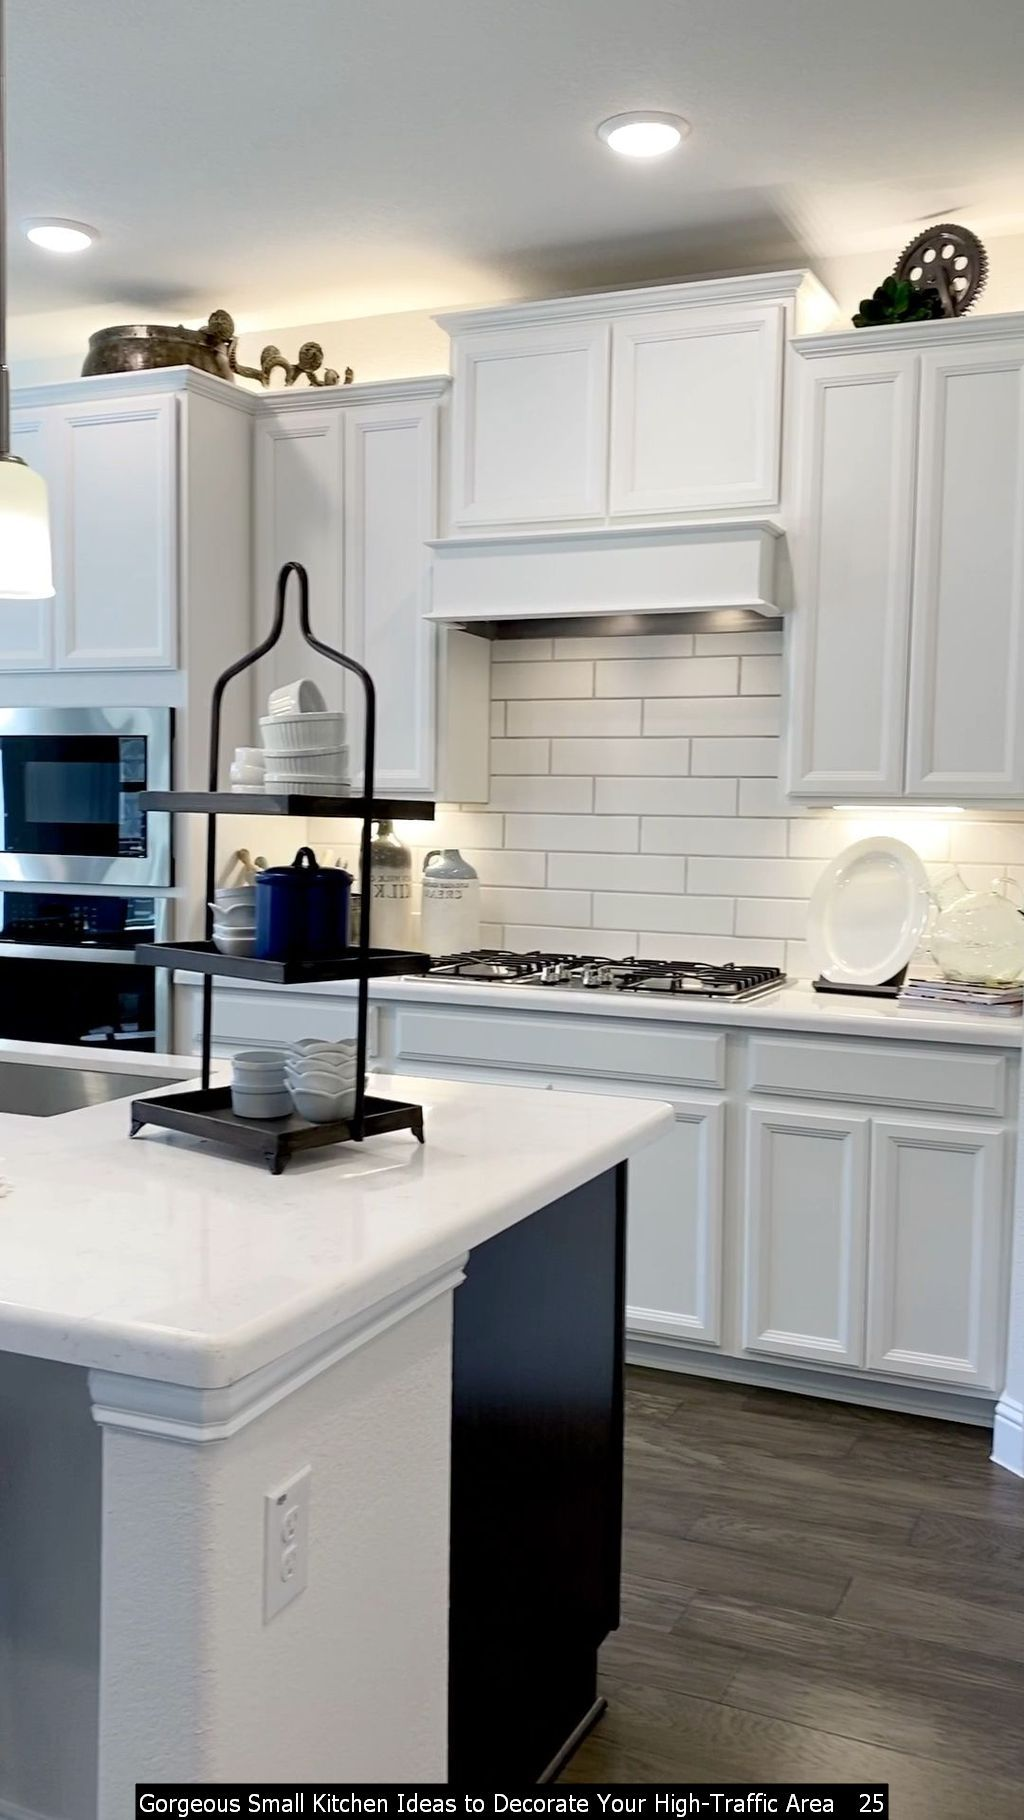 9 Gorgeous Small Kitchen Ideas to Decorate Your High Traffic Area ...